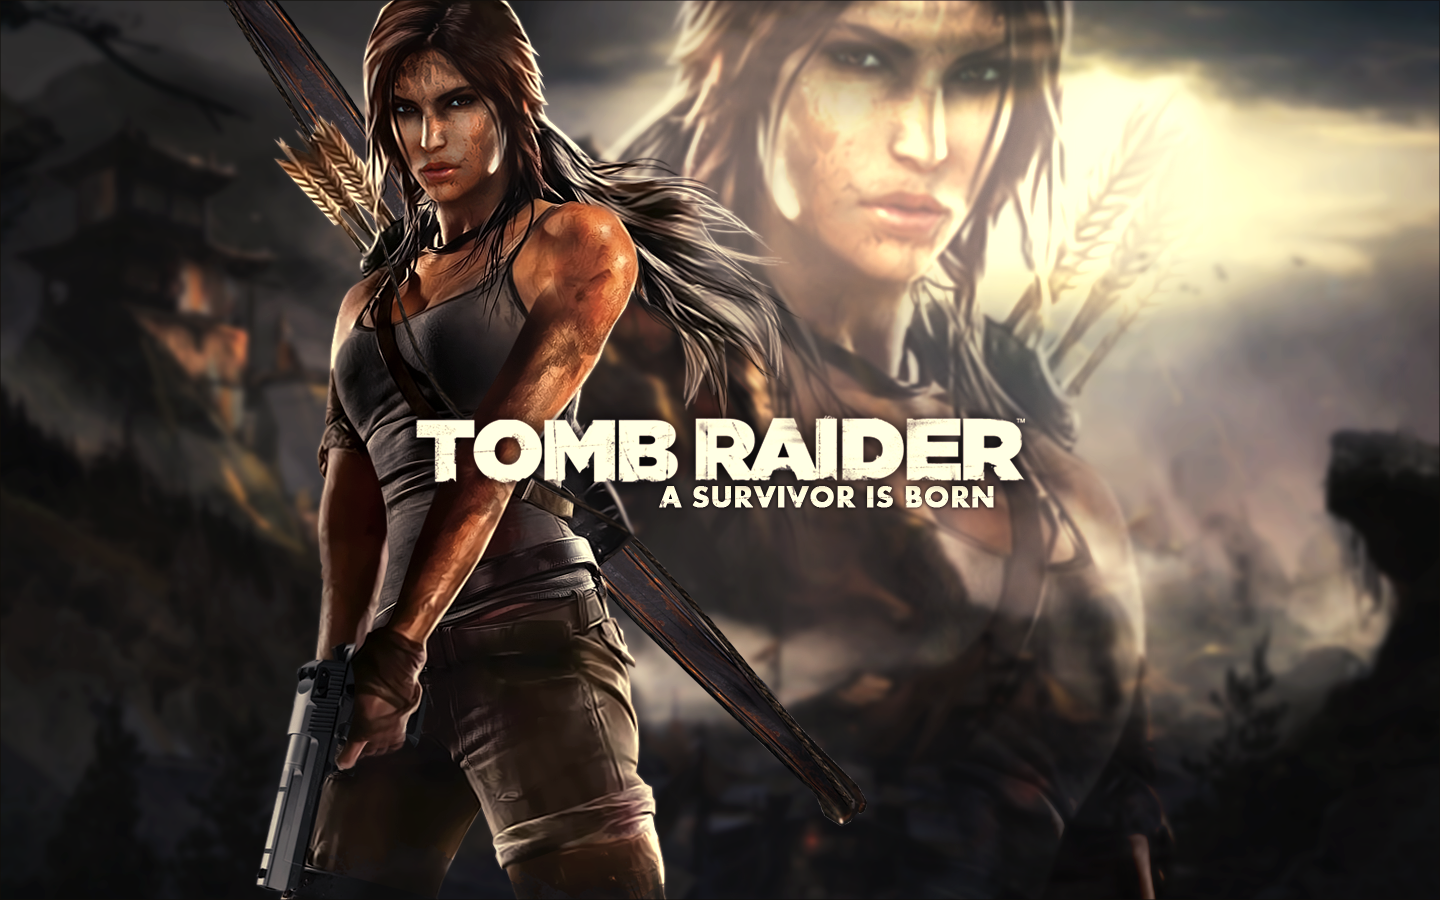 http://modomeu.com/wp-content/uploads/2013/03/Lara-Croft-Tomb-Raider-2013-Wallpaper-HD.png